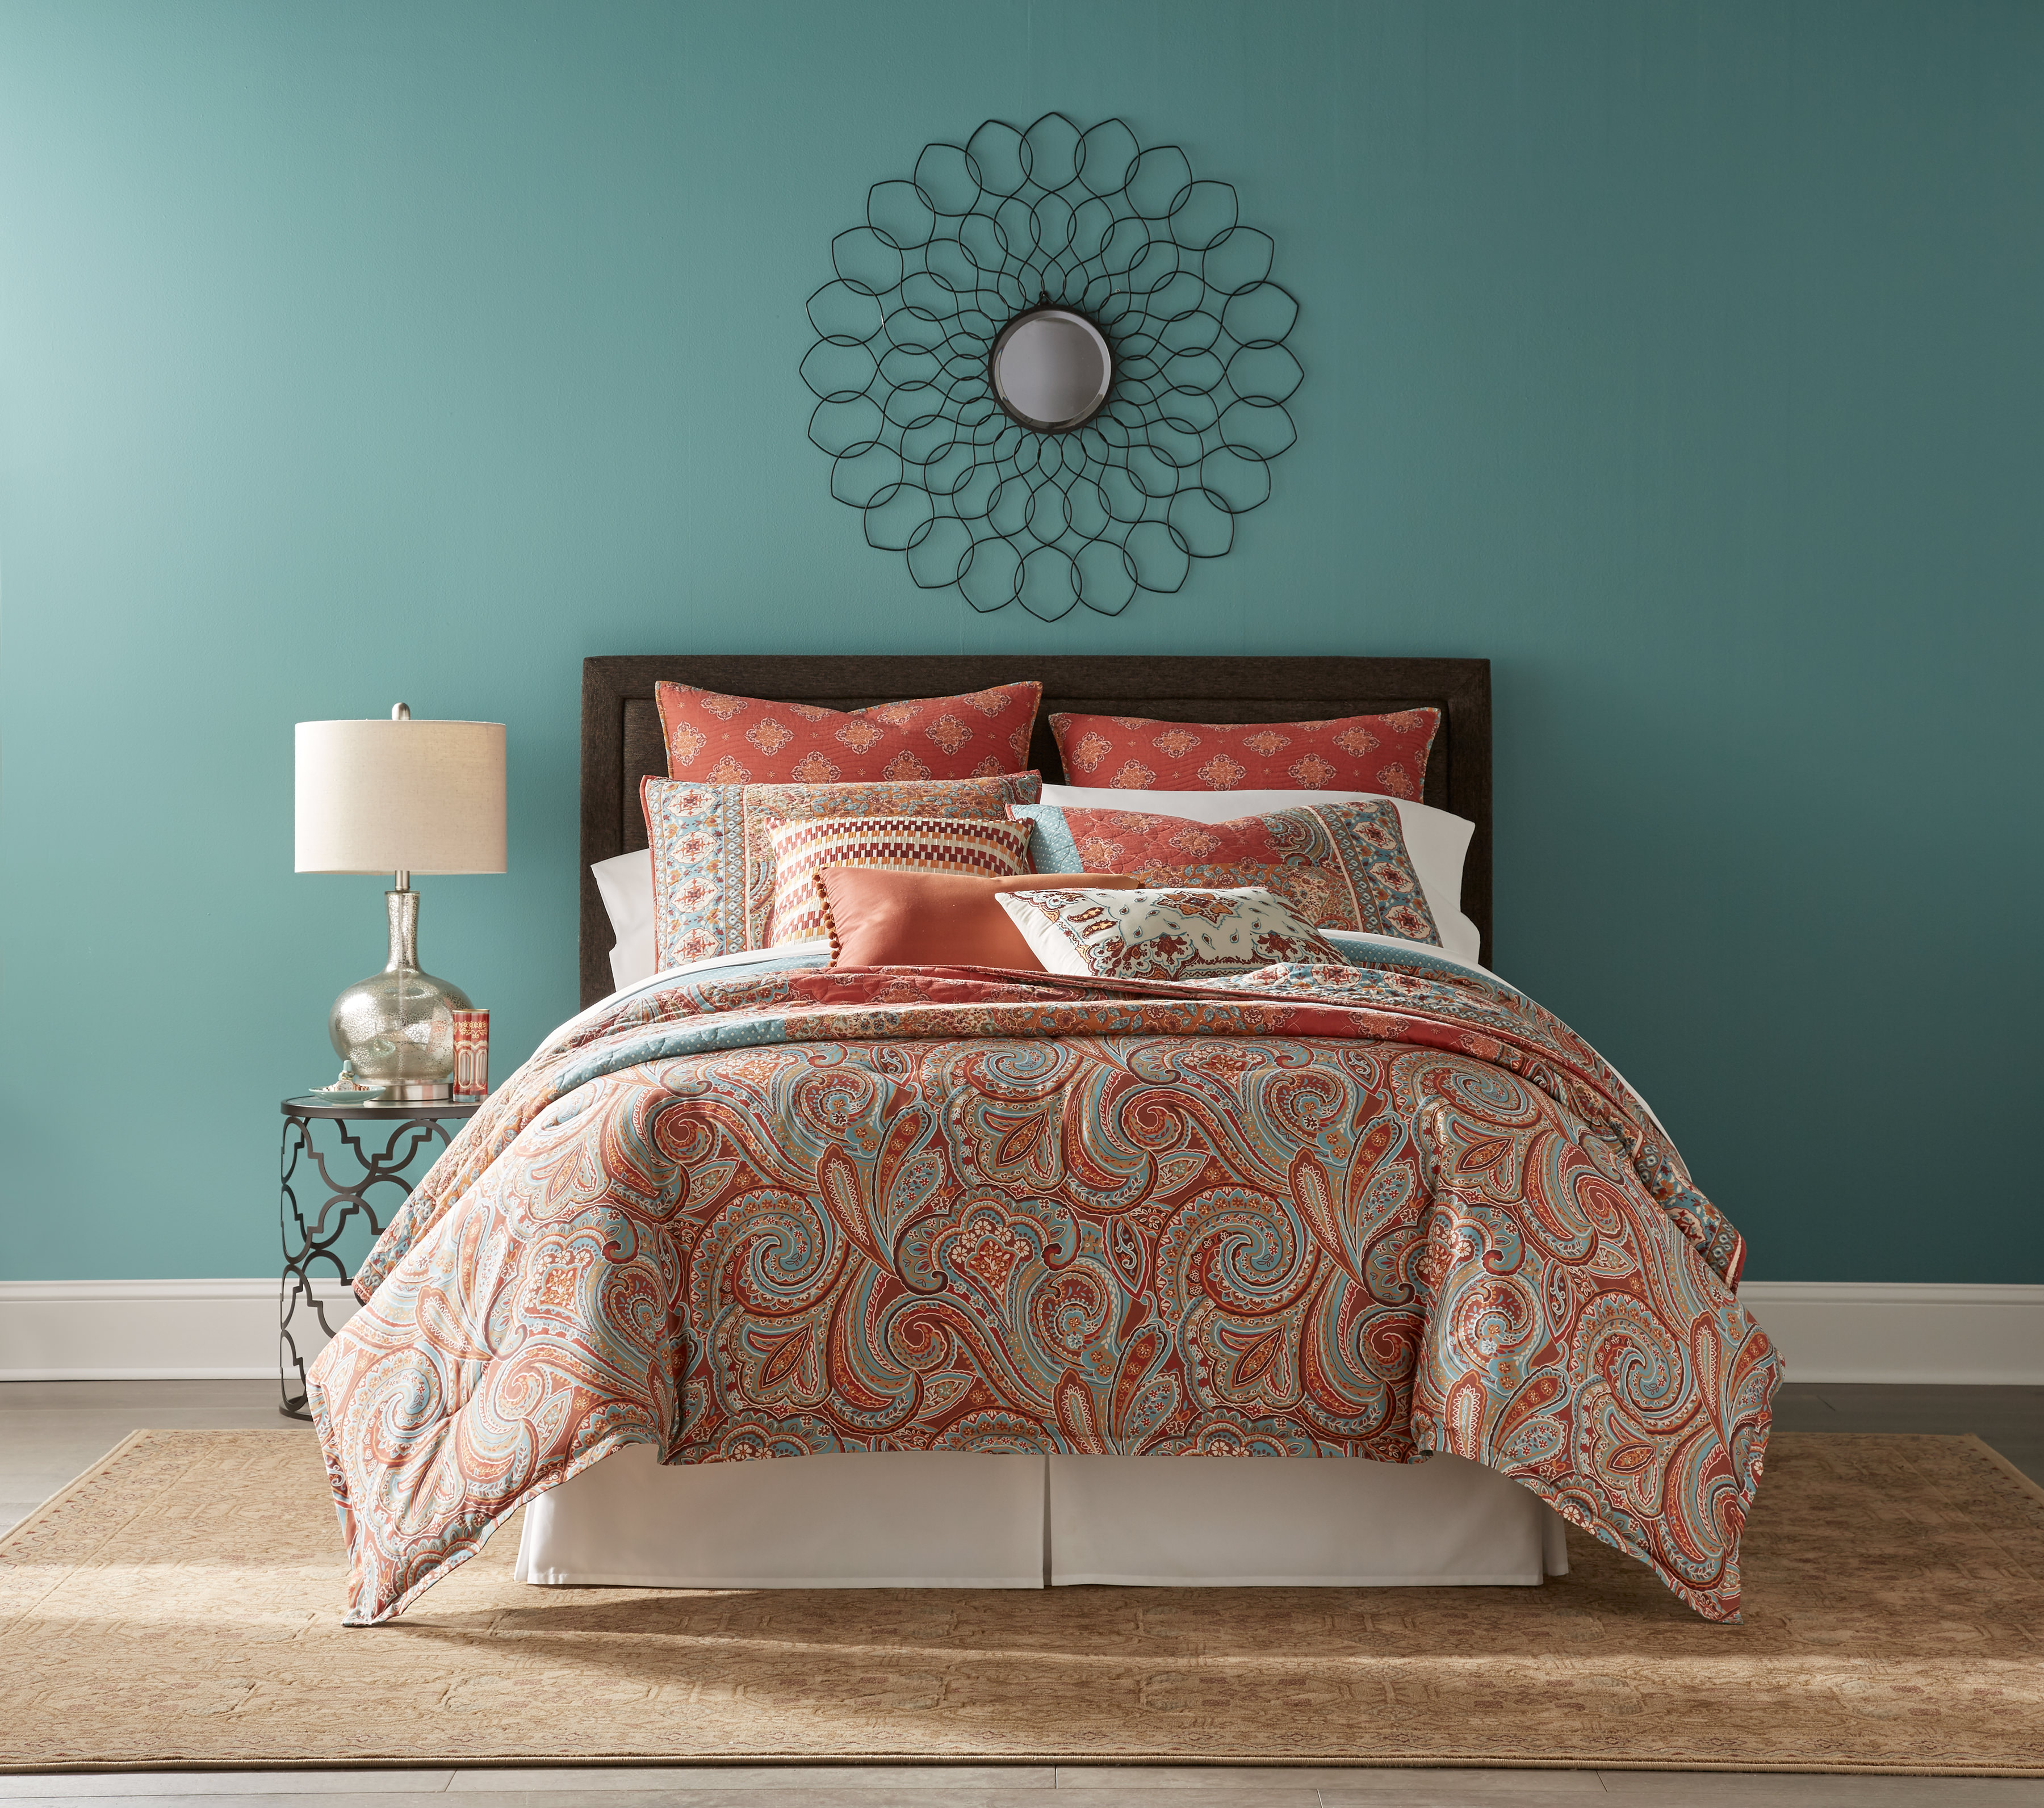 Epr Retail News The Home Store At Jcpenney To Debut Wider